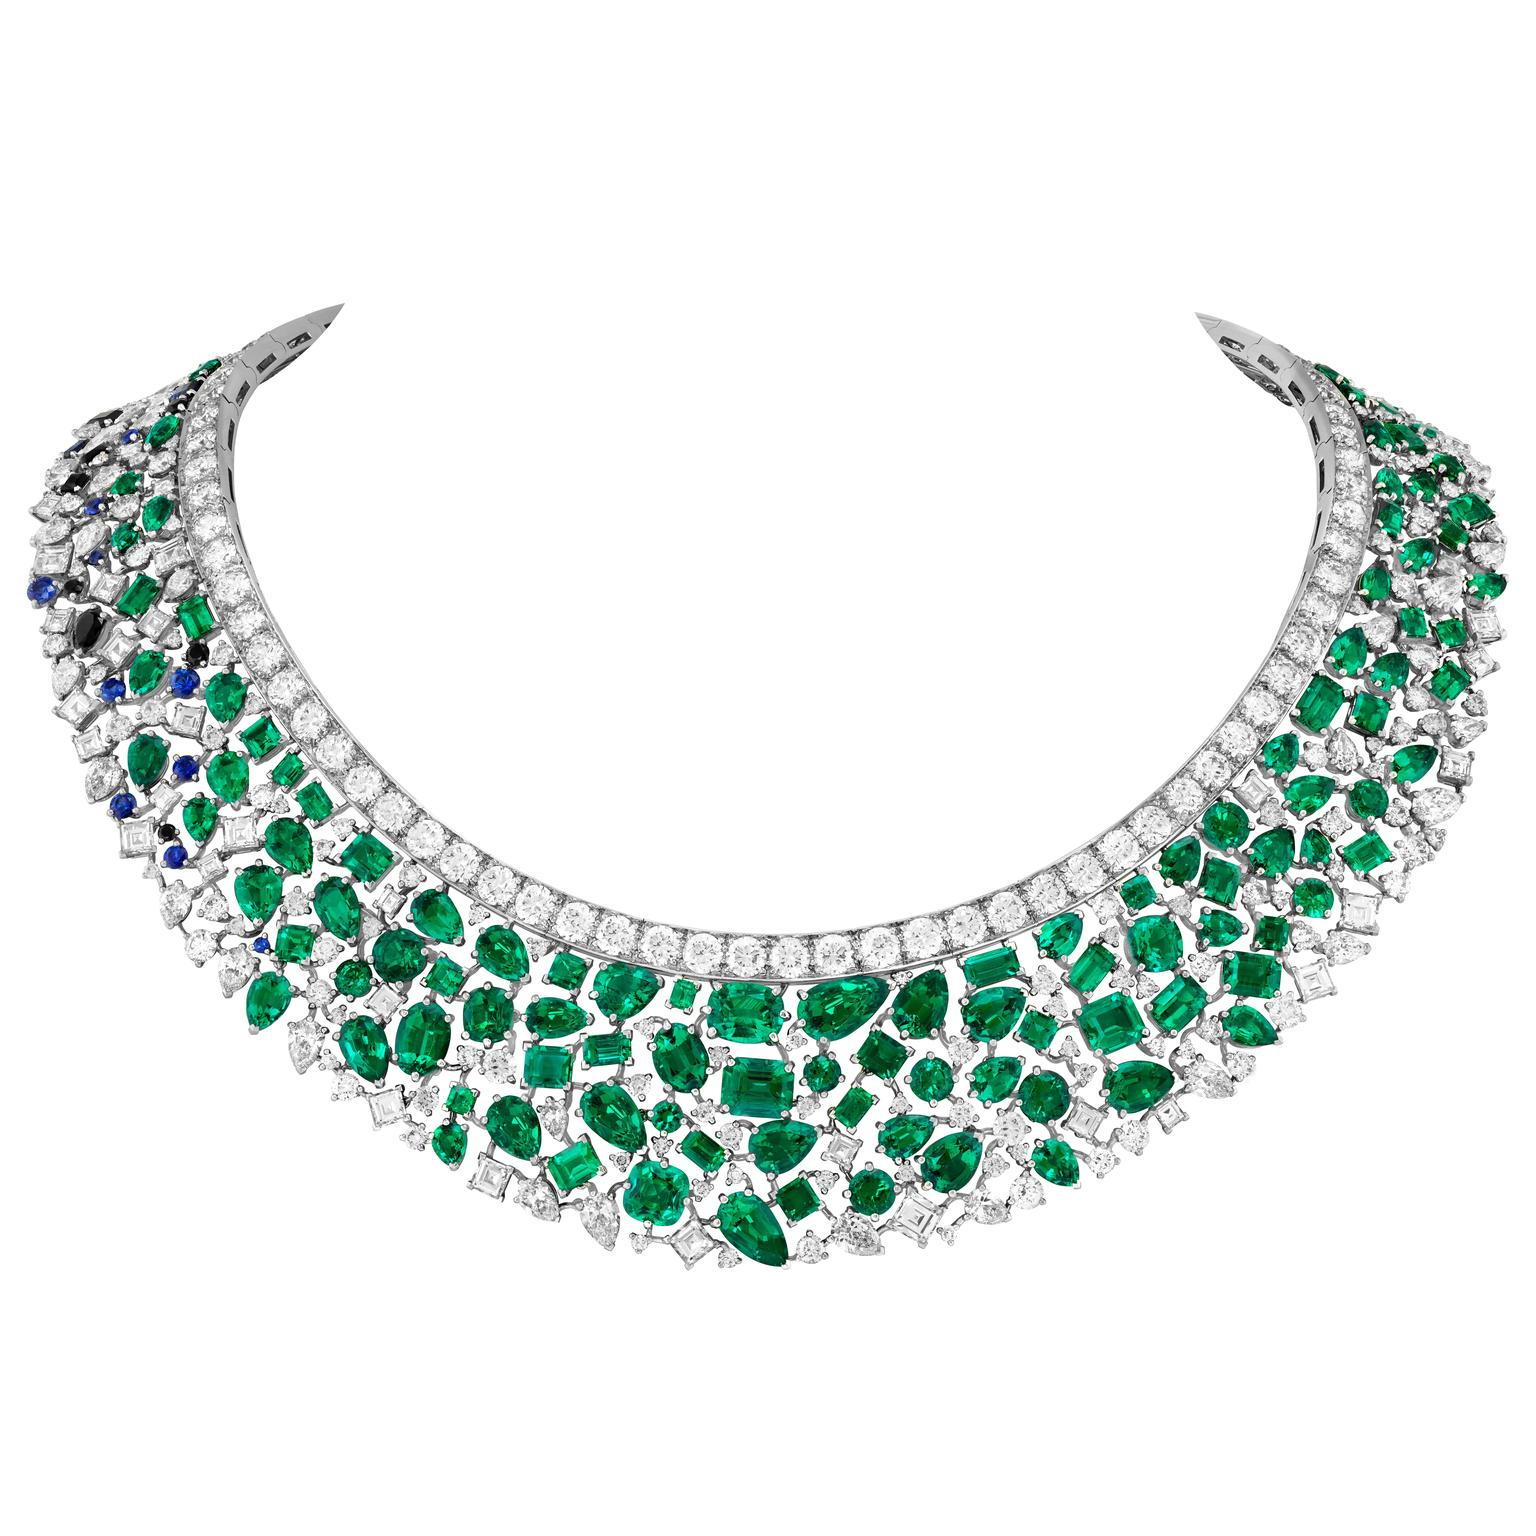 Centura d'émeraude necklace by Van Cleef & Arpels